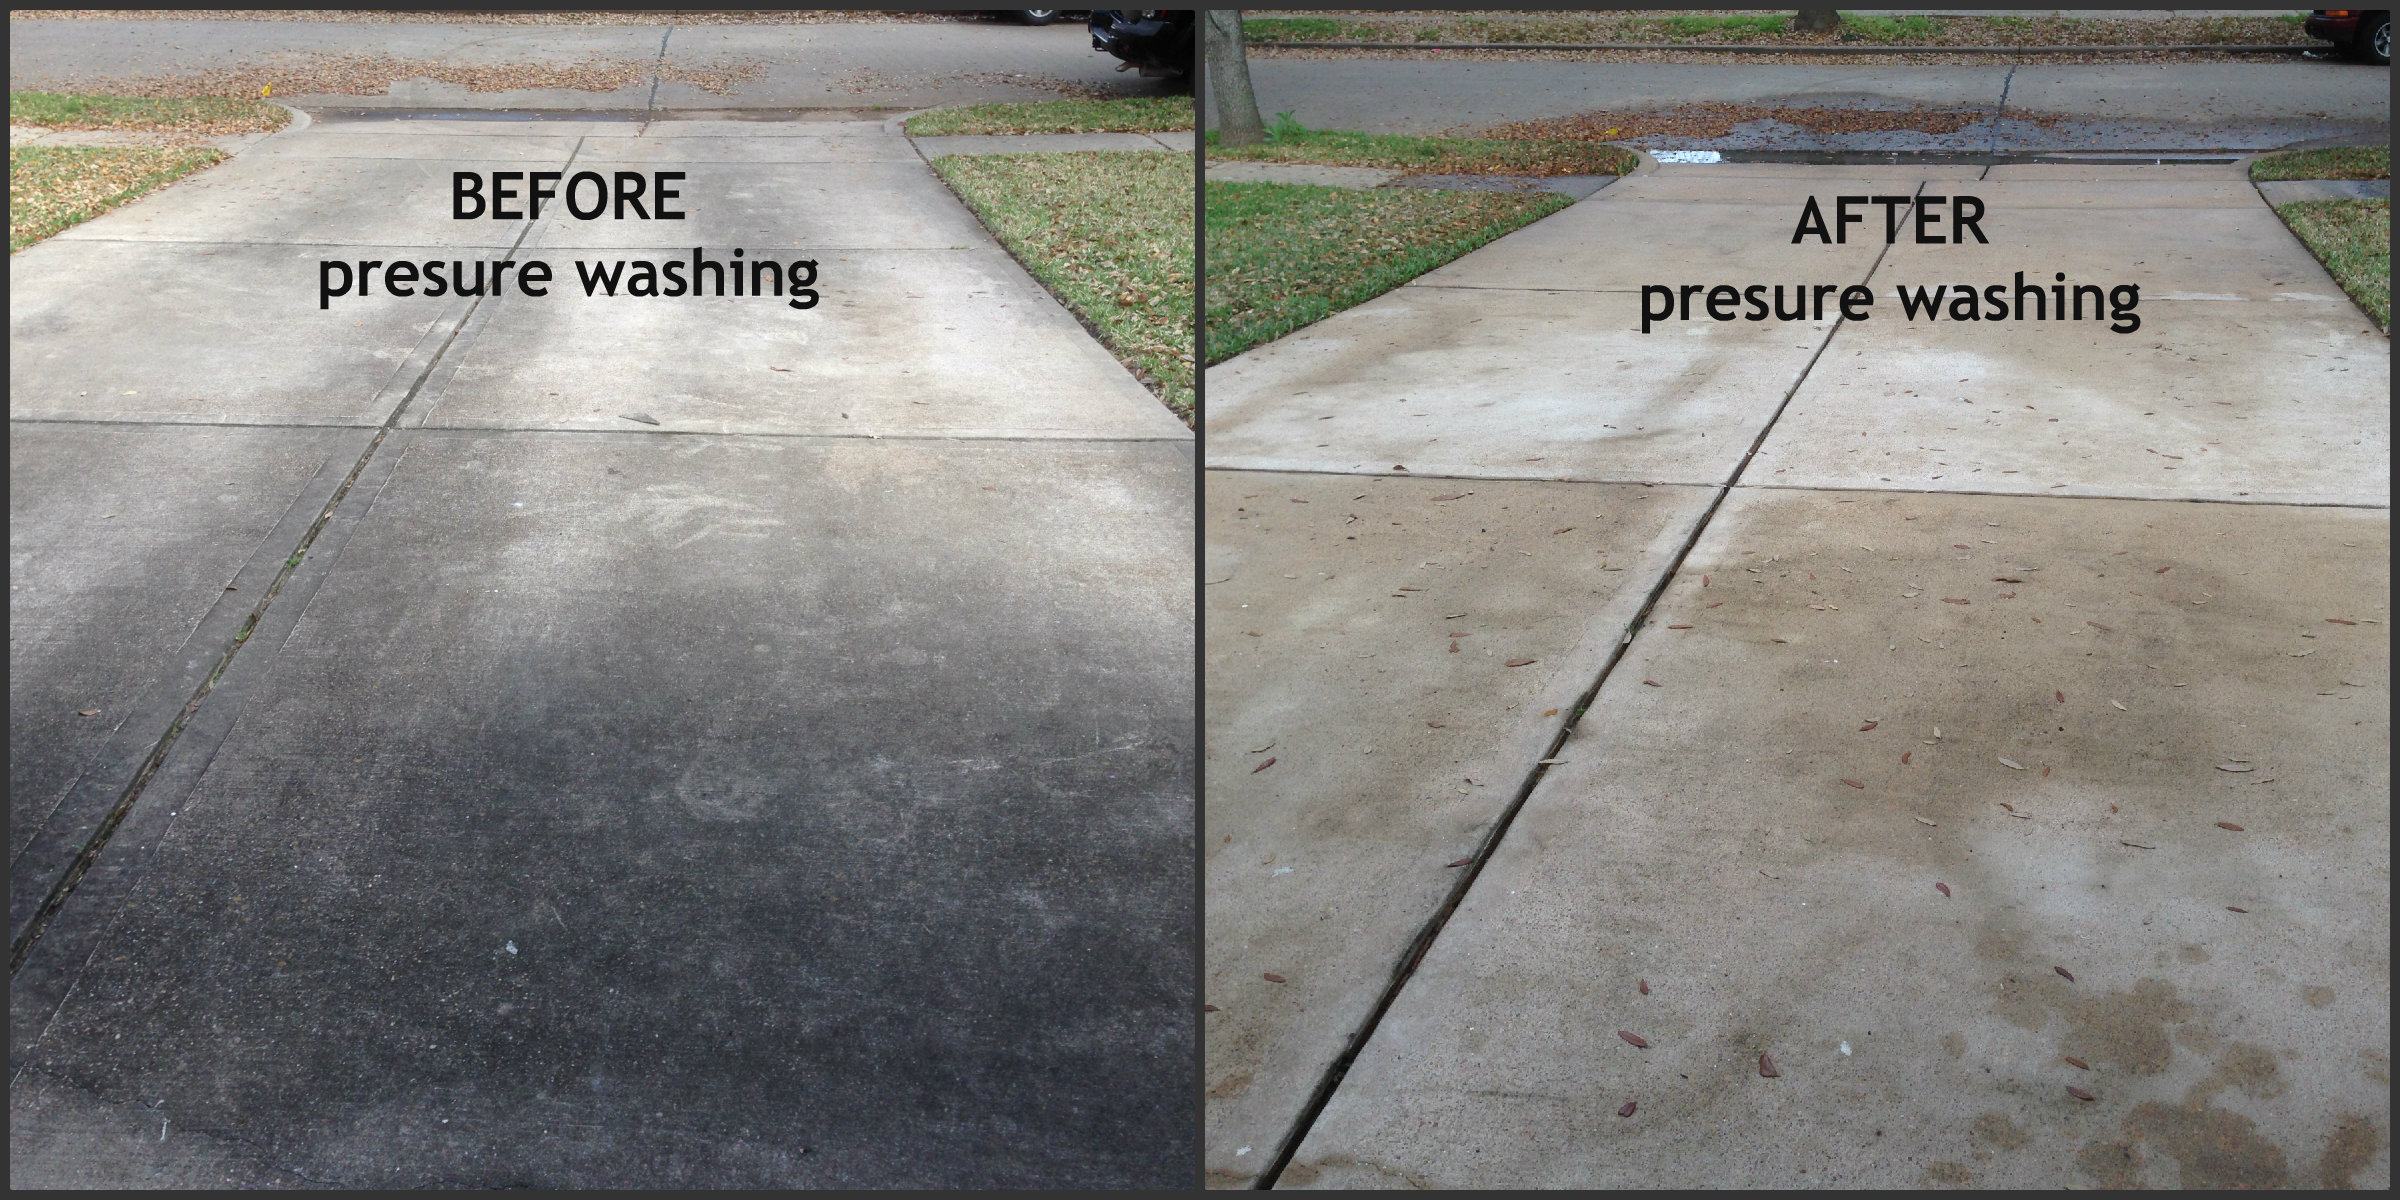 How to pressure wash a concrete brick driveway step by for Pressure wash concrete patio